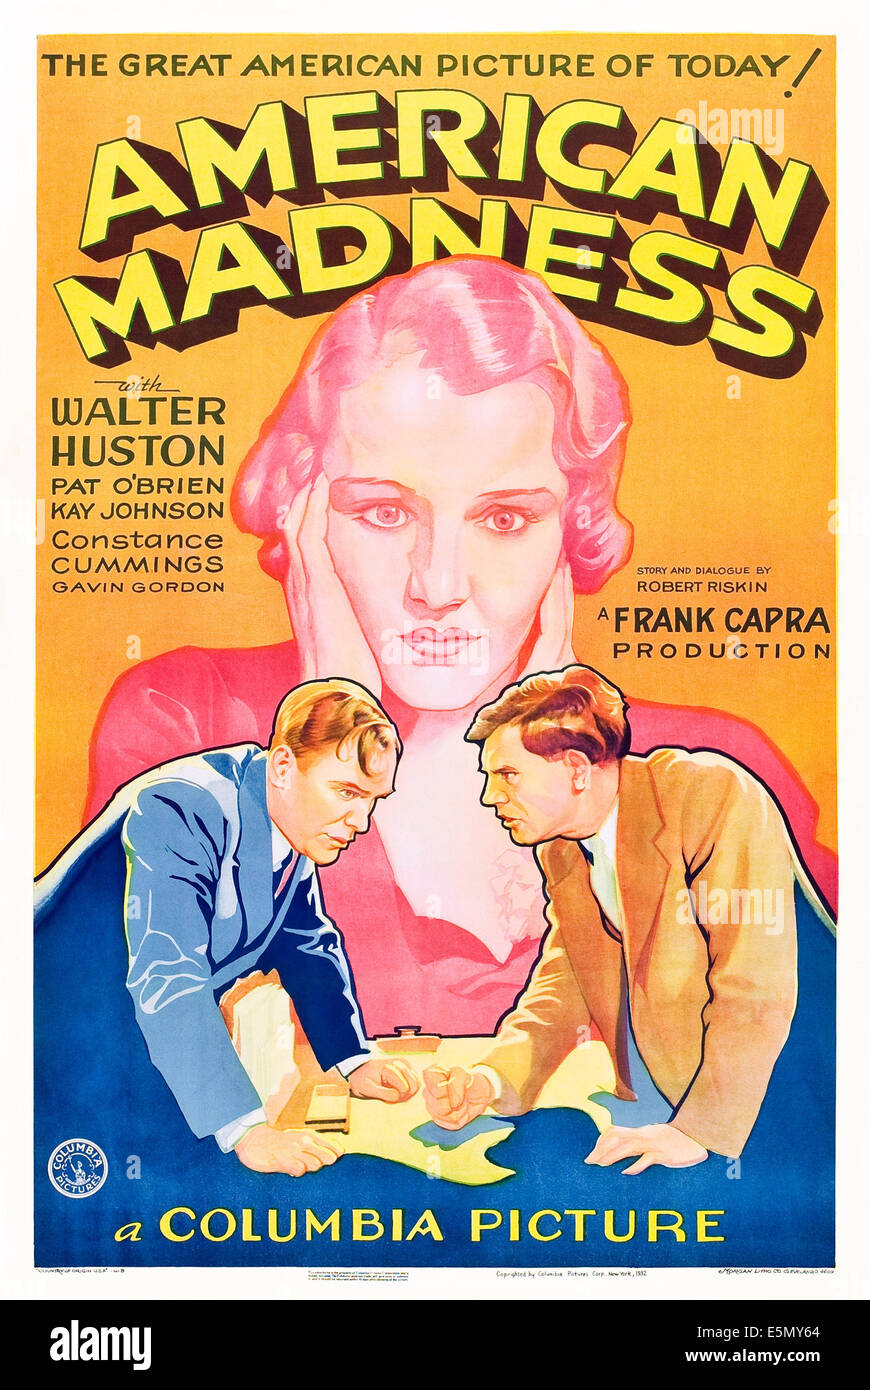 AMERICAN MADNESS, background, Kay Johnson, foreground from left: Pat O'Brien, Walter Huston on poster art, 1932 Stock Photo